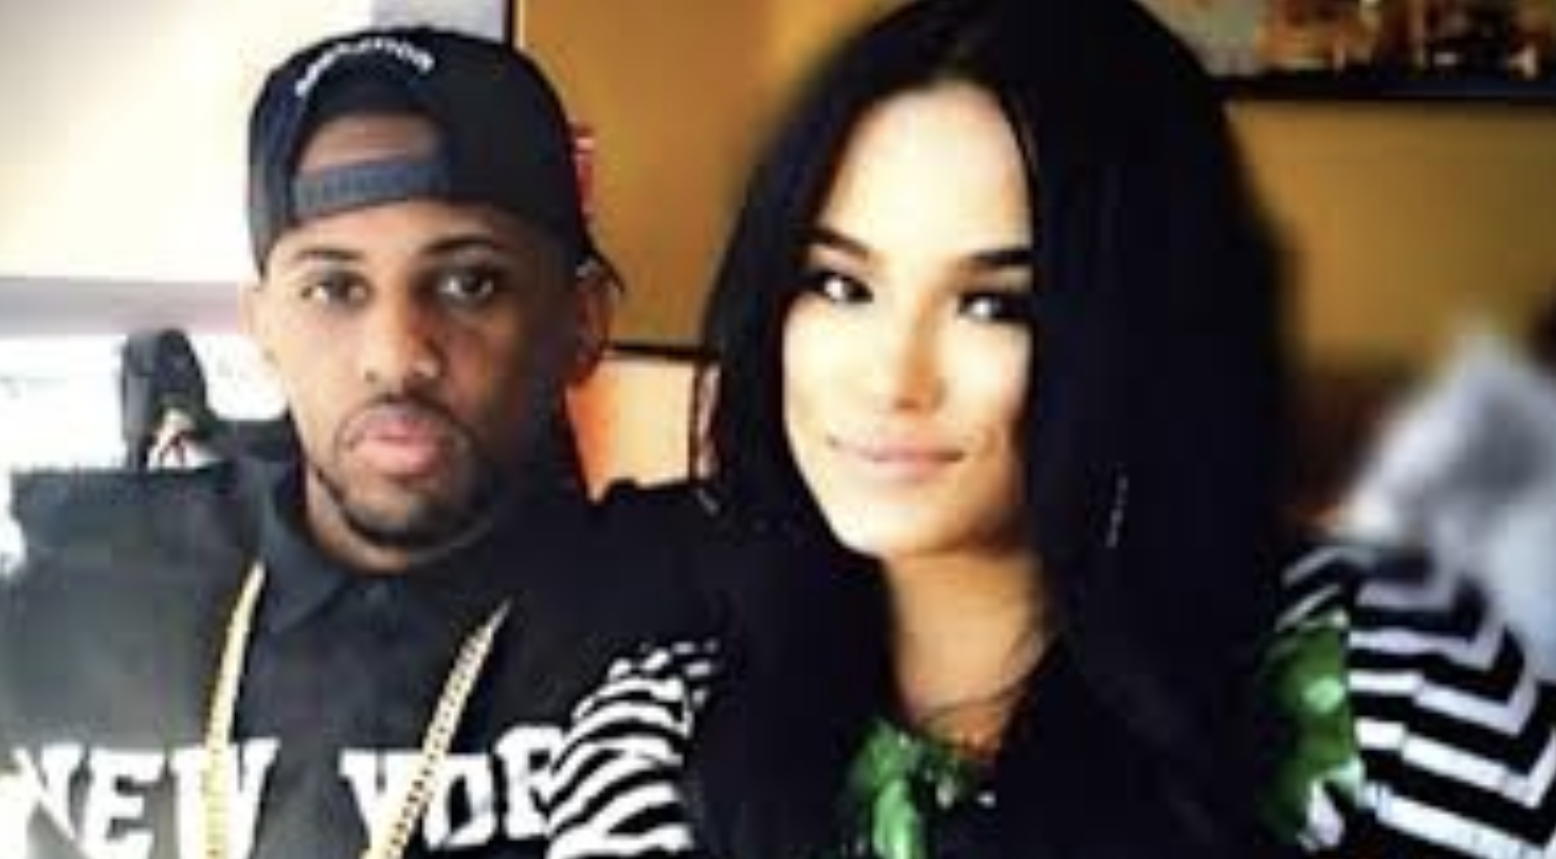 8257716f1f5 Earlier this year rapper Fabolous was arrested on domestic violence charges  for viciously assaulting his longtime girlfriend Emily B and making  terroristic ...